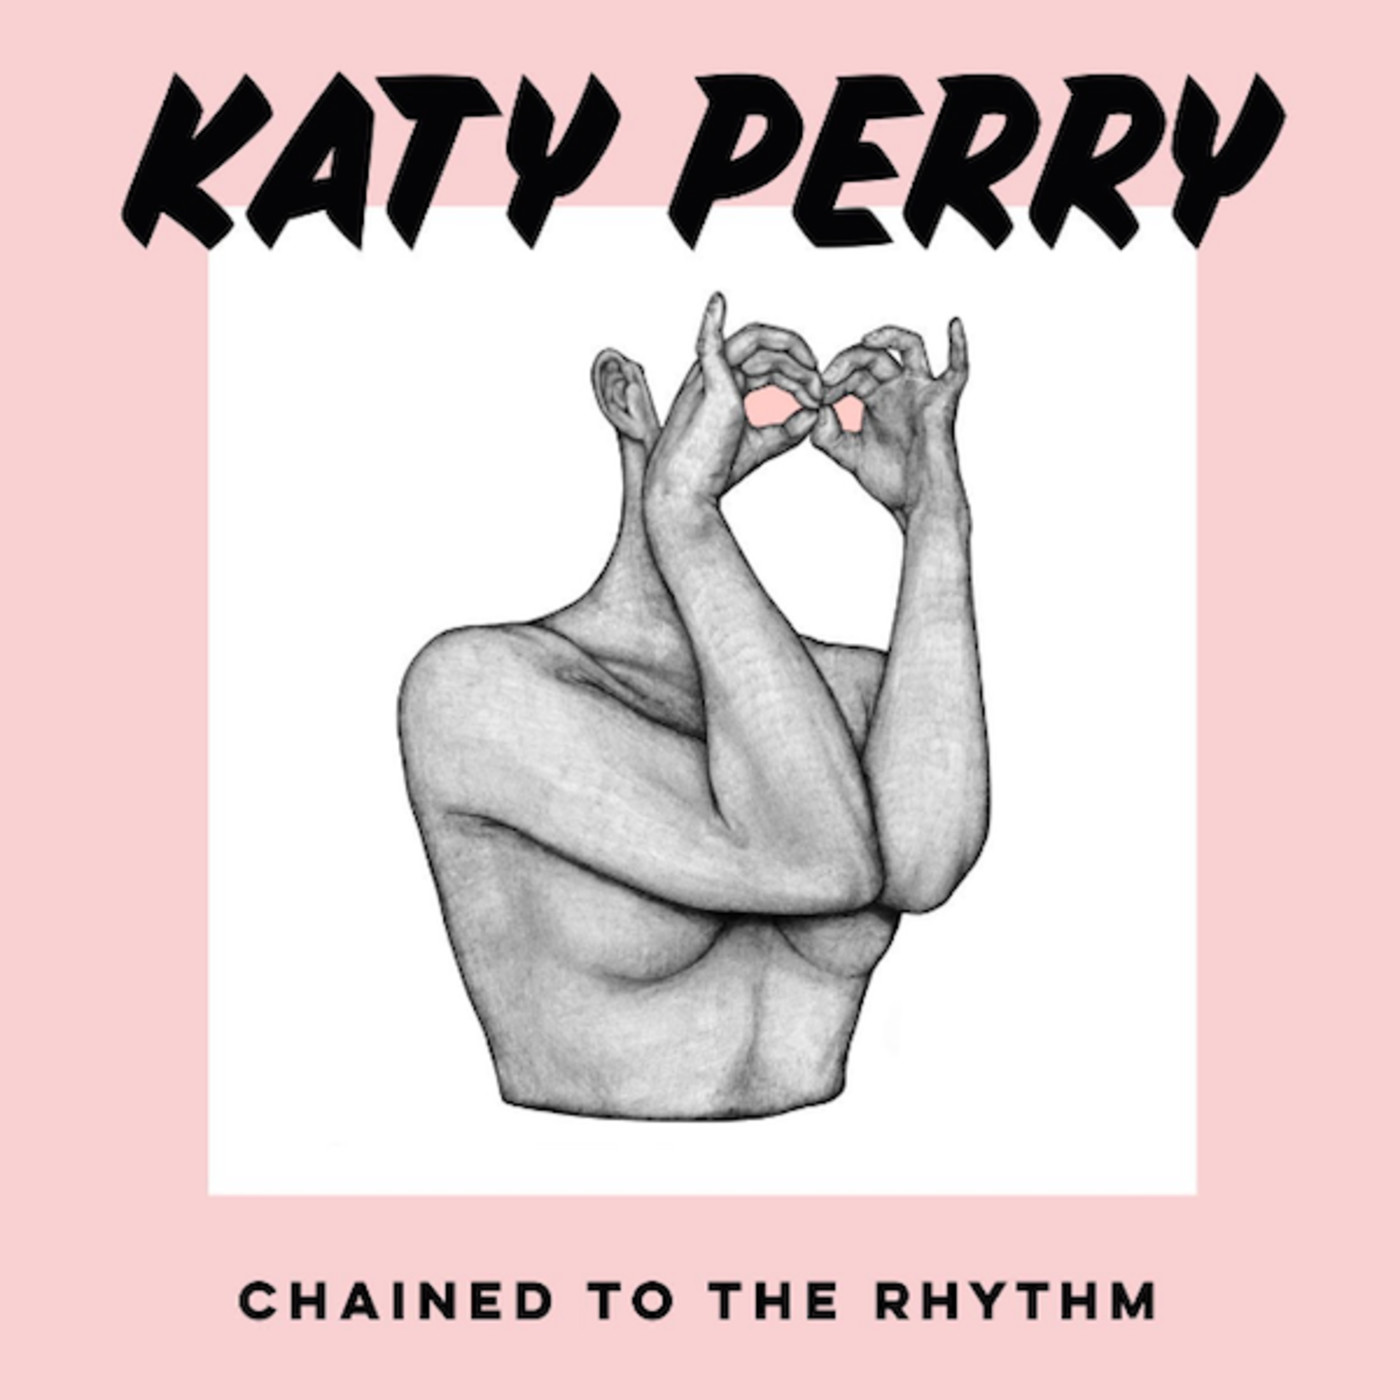 """Katy Perry """"Chained to the Rhythm"""" f/ Skip Marley."""